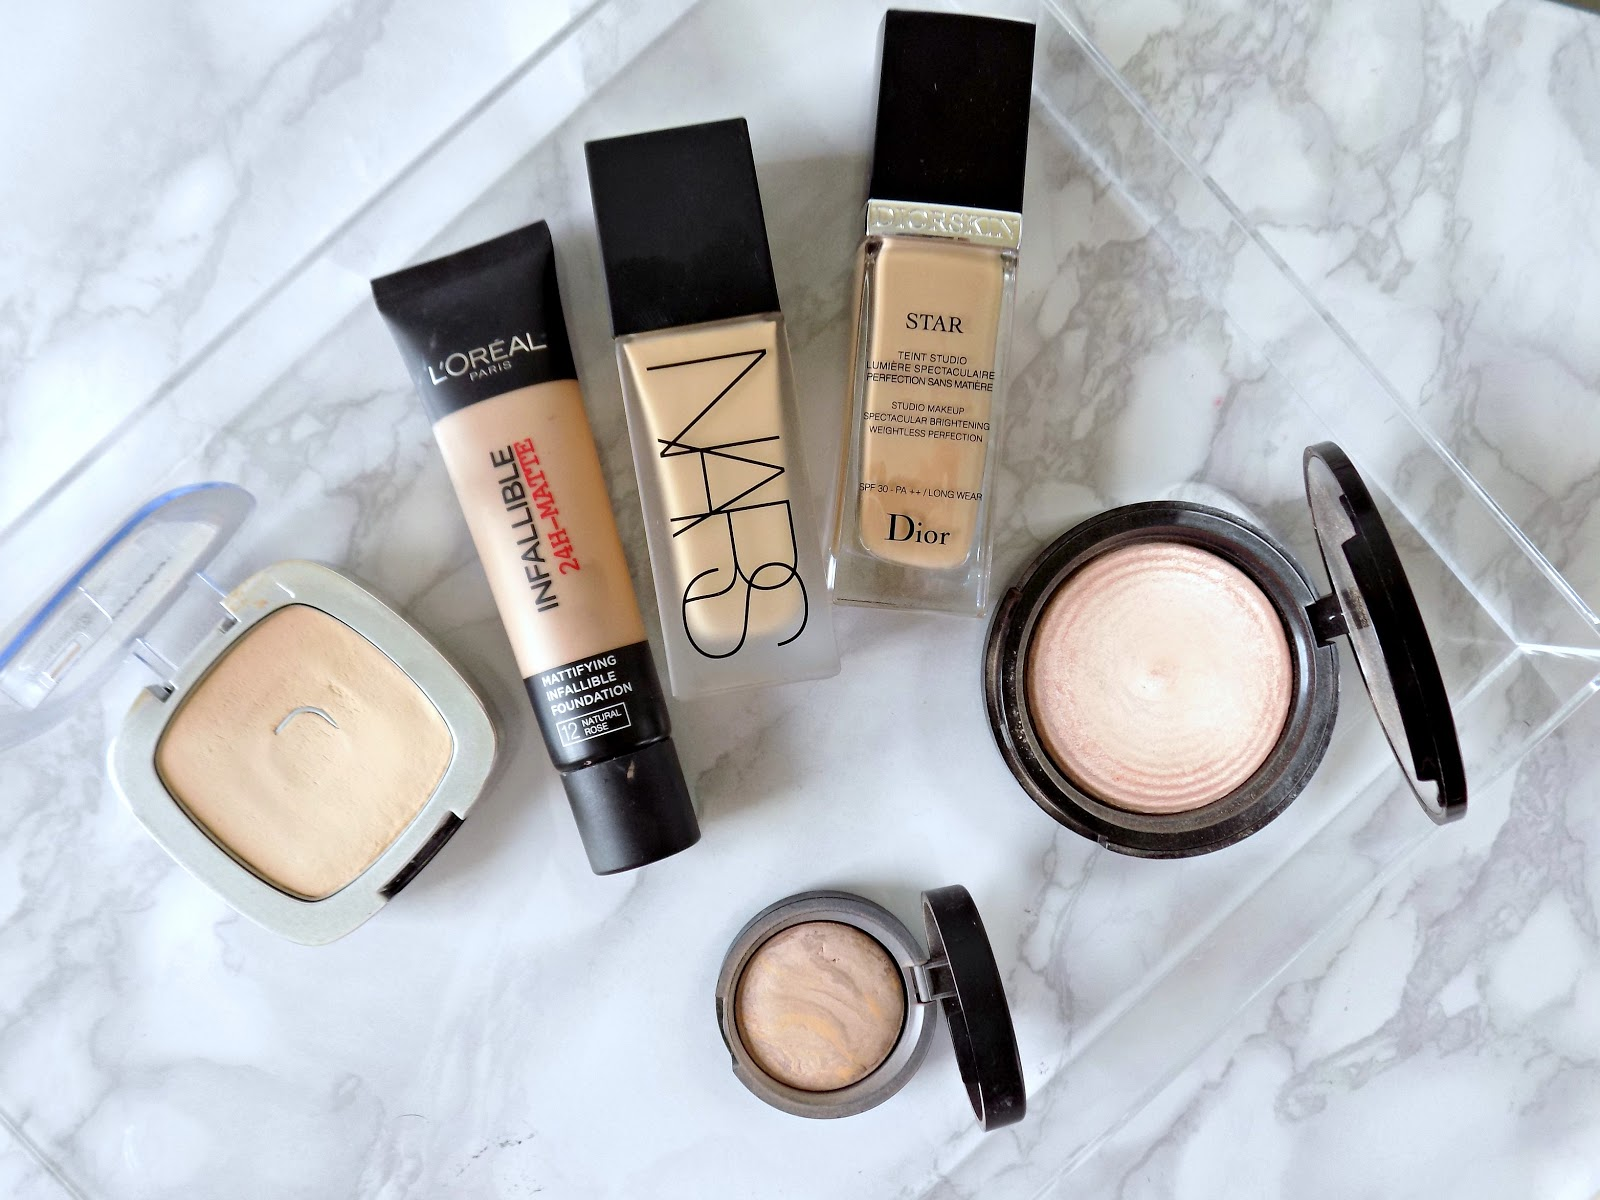 foundations and powders